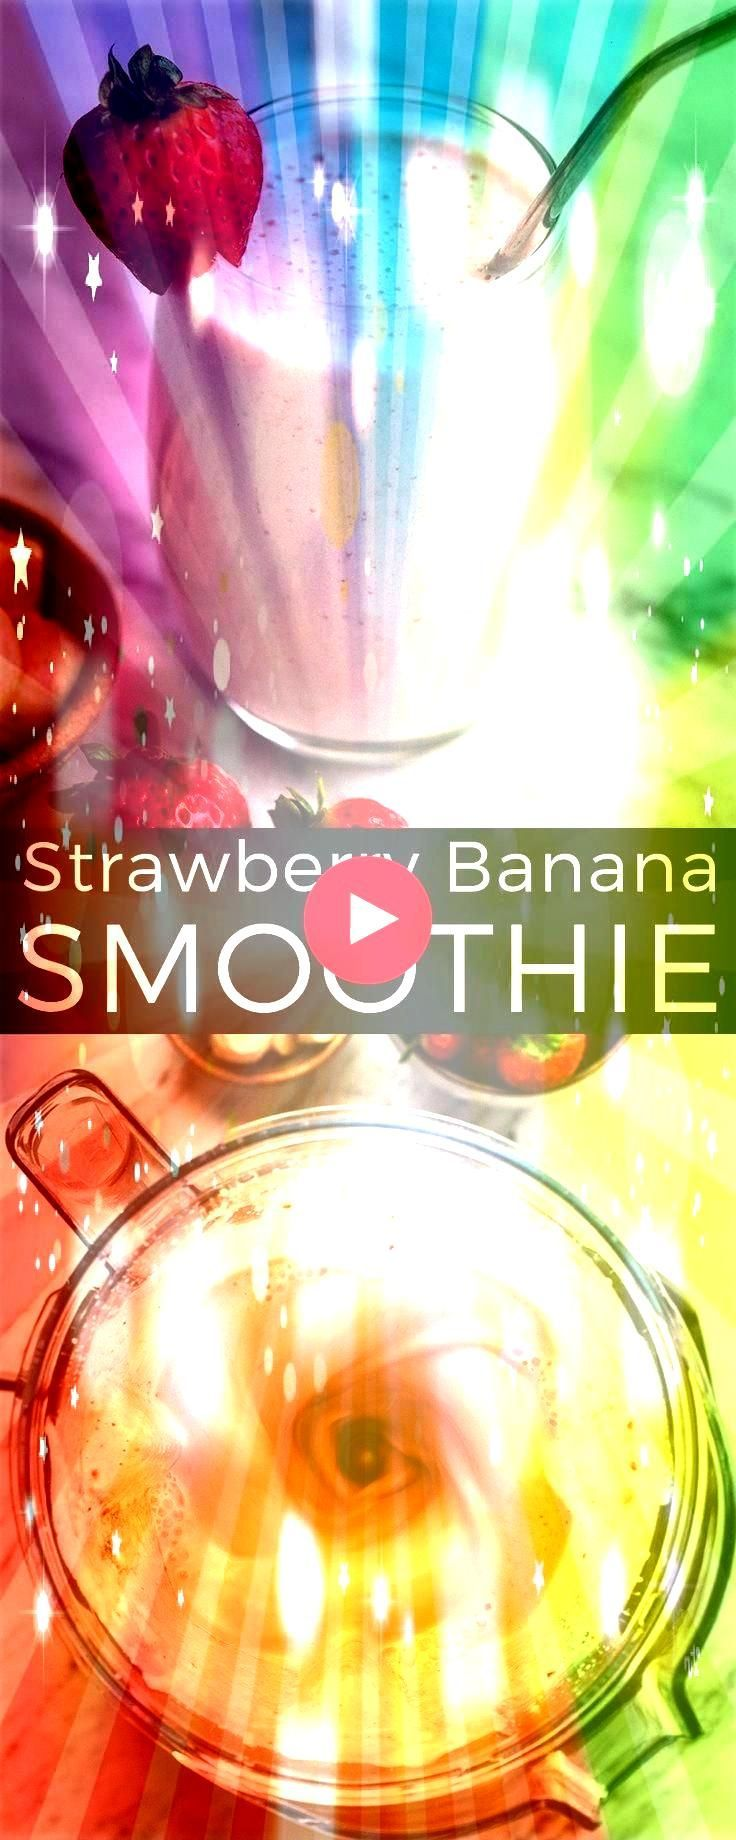 #strawberrybananasmoothie #joyfoodsunshinethe #smoothierecipes #joyfoodsunshine #strawberry #breakfast #smoothie #readythe #vitamix #perfect #protein #minutes #healthy #banana #recipeBEST strawberry banana smoothie recipe ever! It's easy (ready in less than 5 minutes), healthy, and made with yogurt so it's full of protein!  It's the perfect snack or breakfast! via @joyfoodsunshineThe BEST strawberry banana smoothie recipe ever! It's easy (ready in less than 5 minutes), healthy, and made with yog #healthystrawberrybananasmoothie